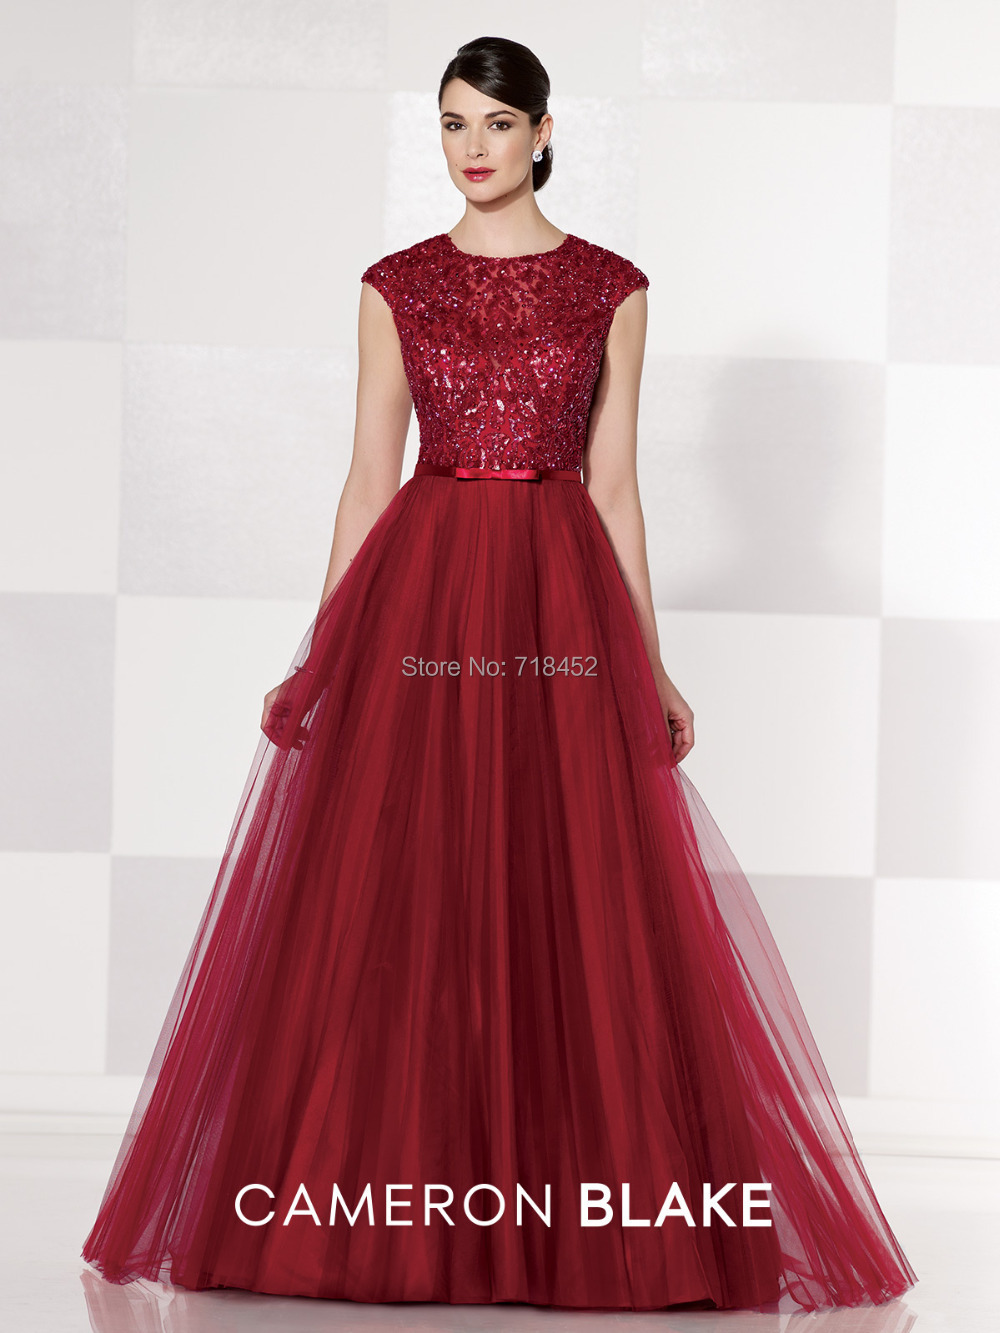 online buy whole crepe pant suit from crepe pant suit black and red mother of bride dress crystal beading lace netting formal party pant suits satin